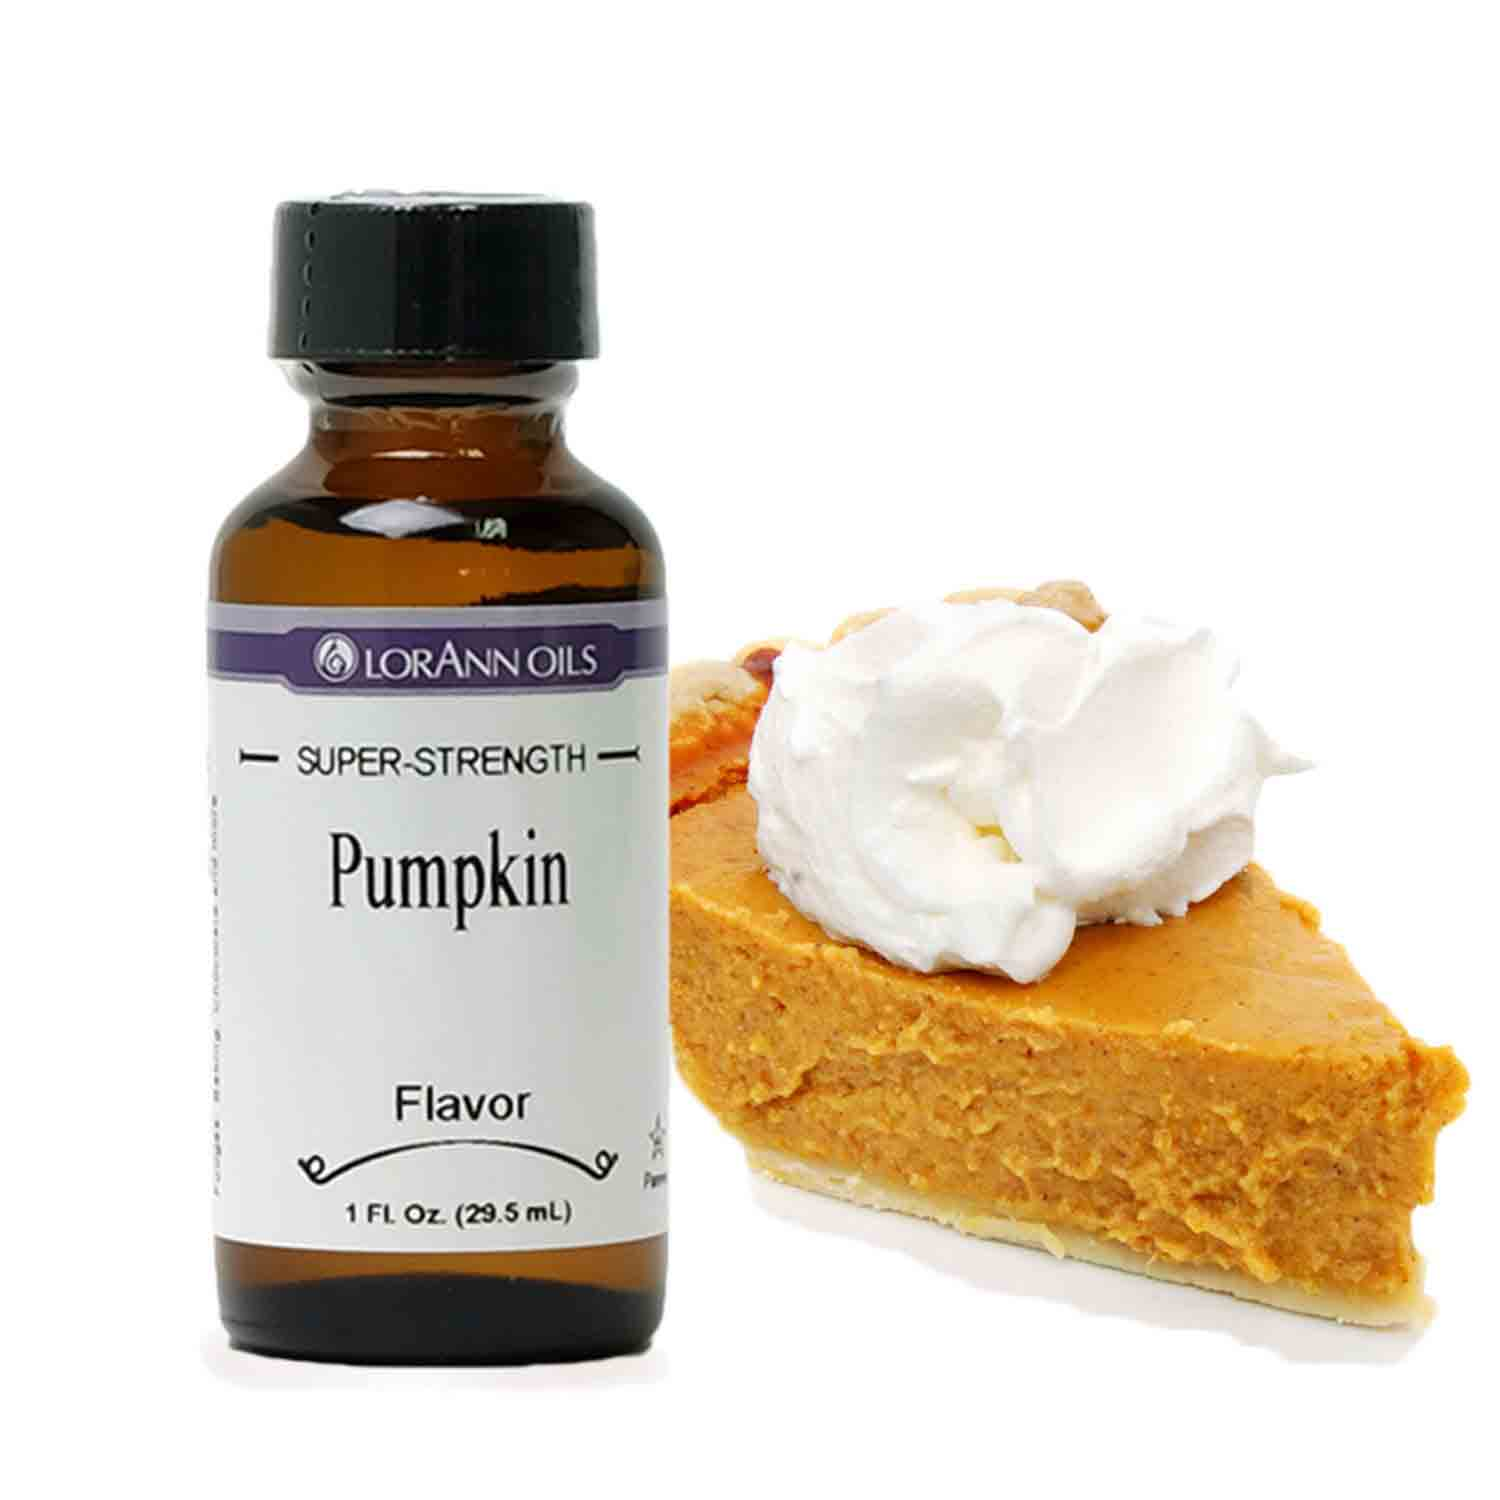 Pumpkin LorAnn Super-Strength Flavor